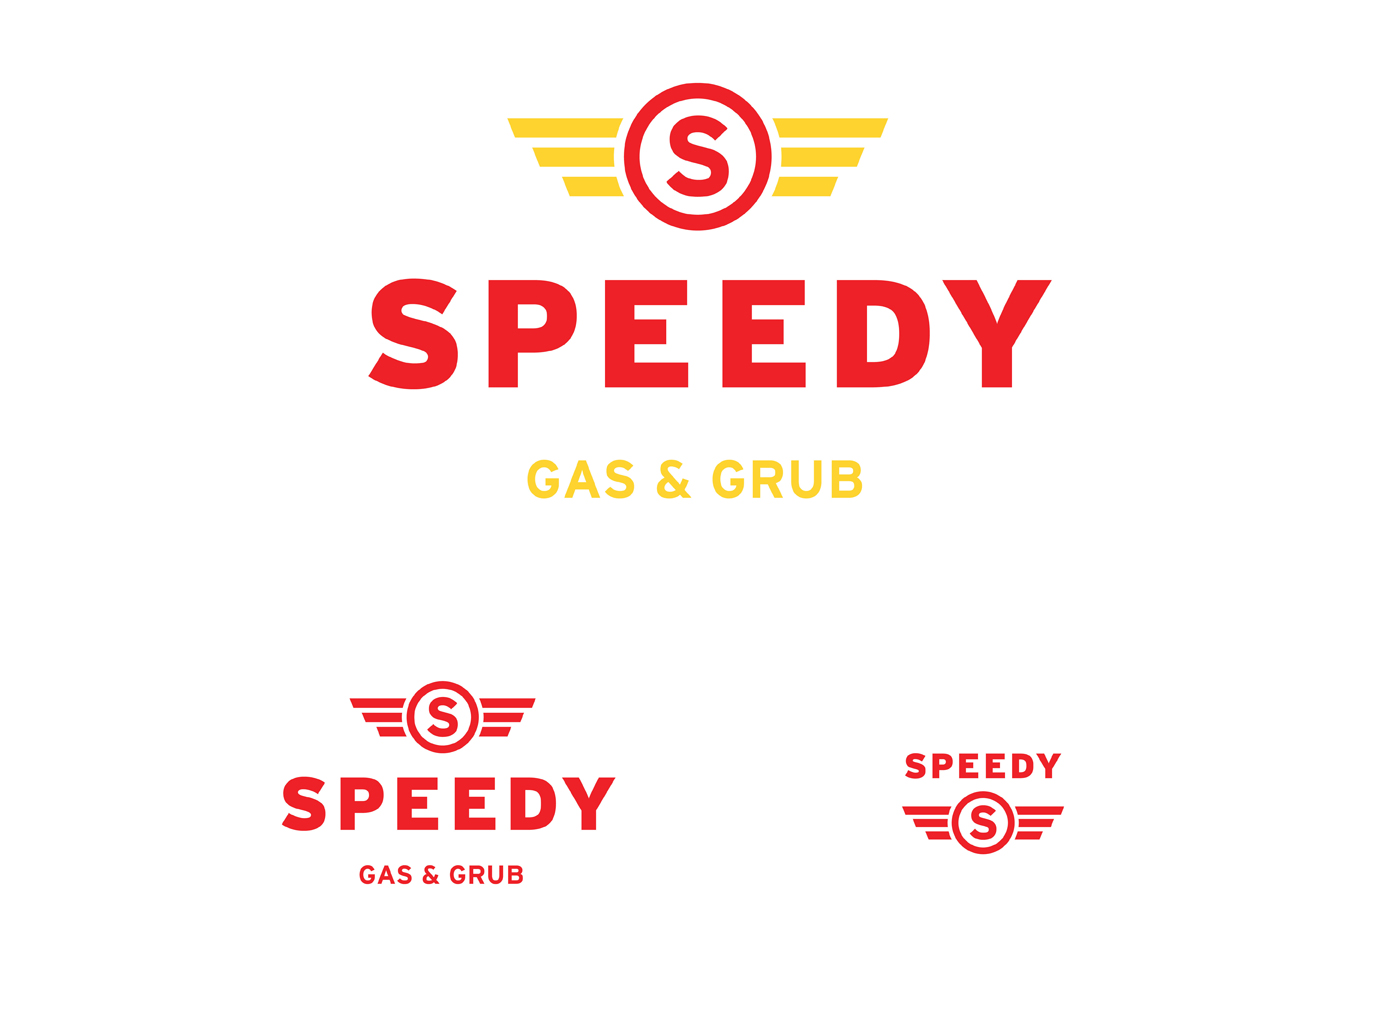 Speedy Gas Graphic Design Branding Primary Logos